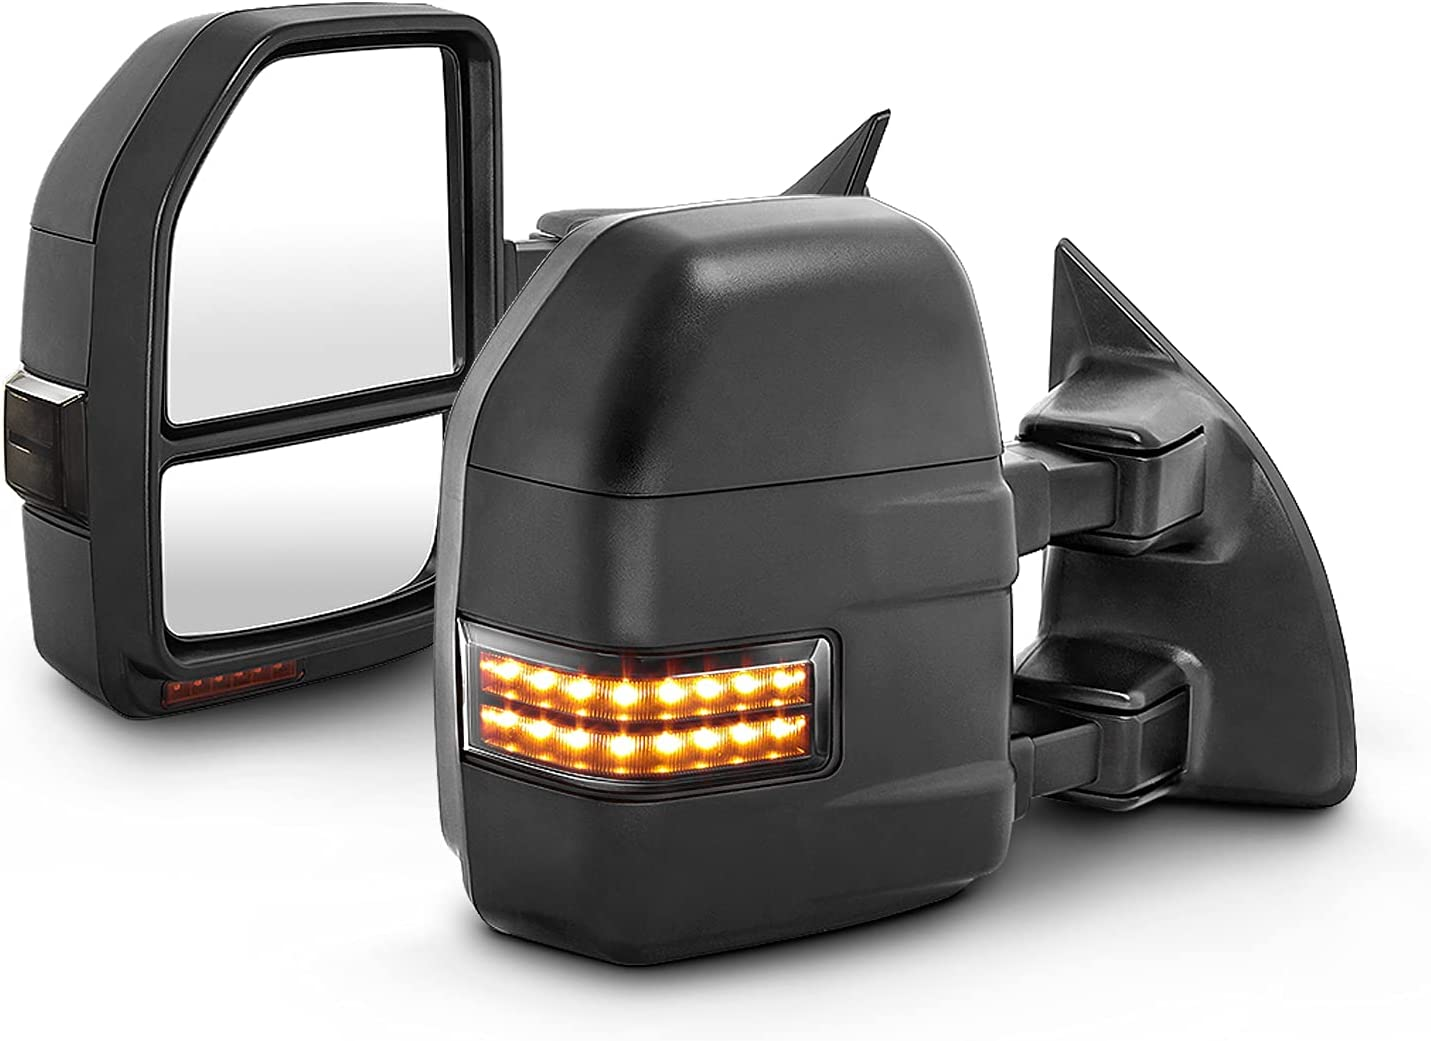 Towing Mirror Fits 99-07 F250 F350 Indefinitely Max 49% OFF F550 Exc 01-05 SuperDuty F450